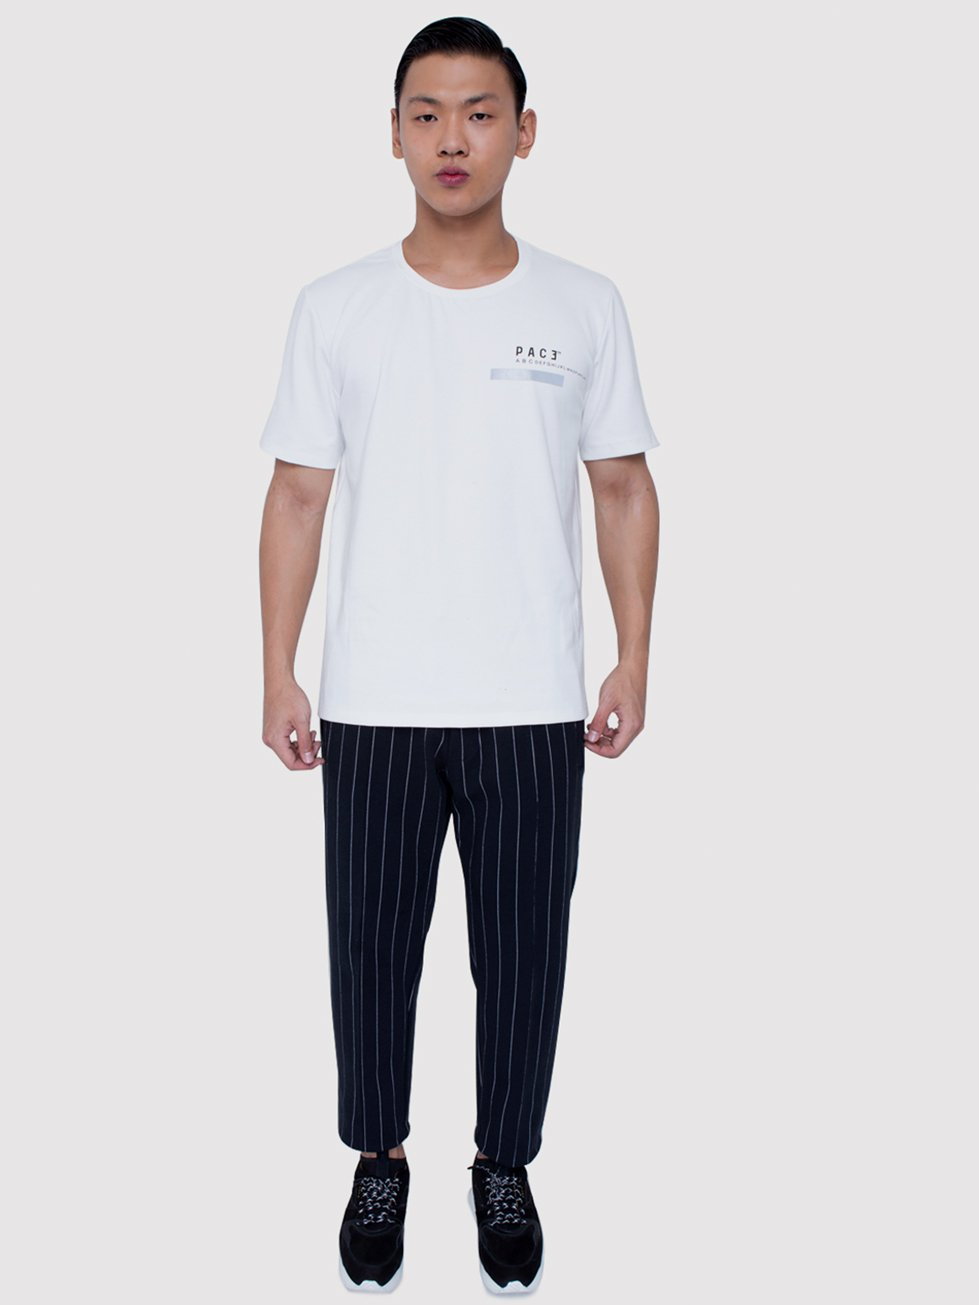 Foto do T- Shirt PACE A to Z Reflexivo Off -White